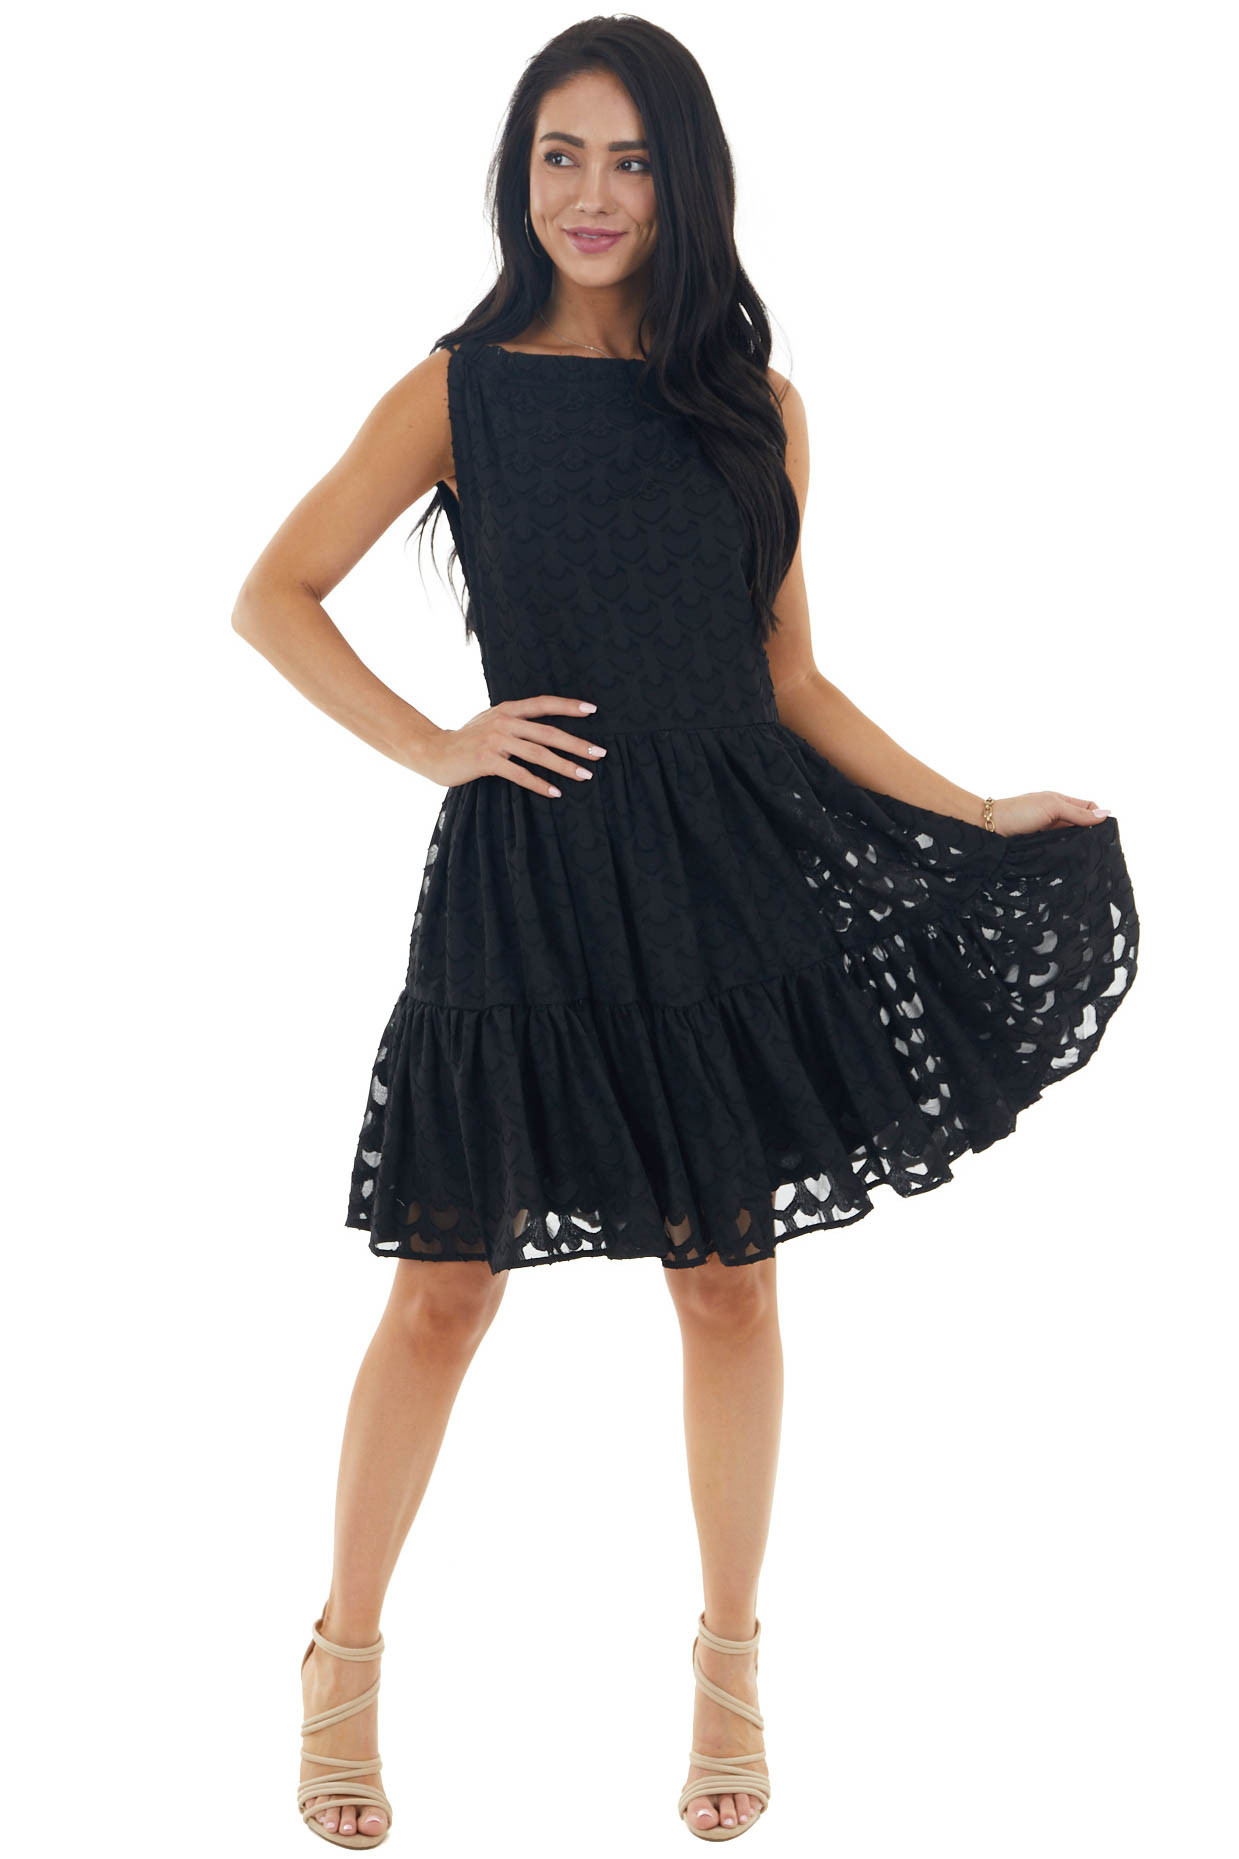 Black Jacquard Textured Tiered Dress with Halter Neckline